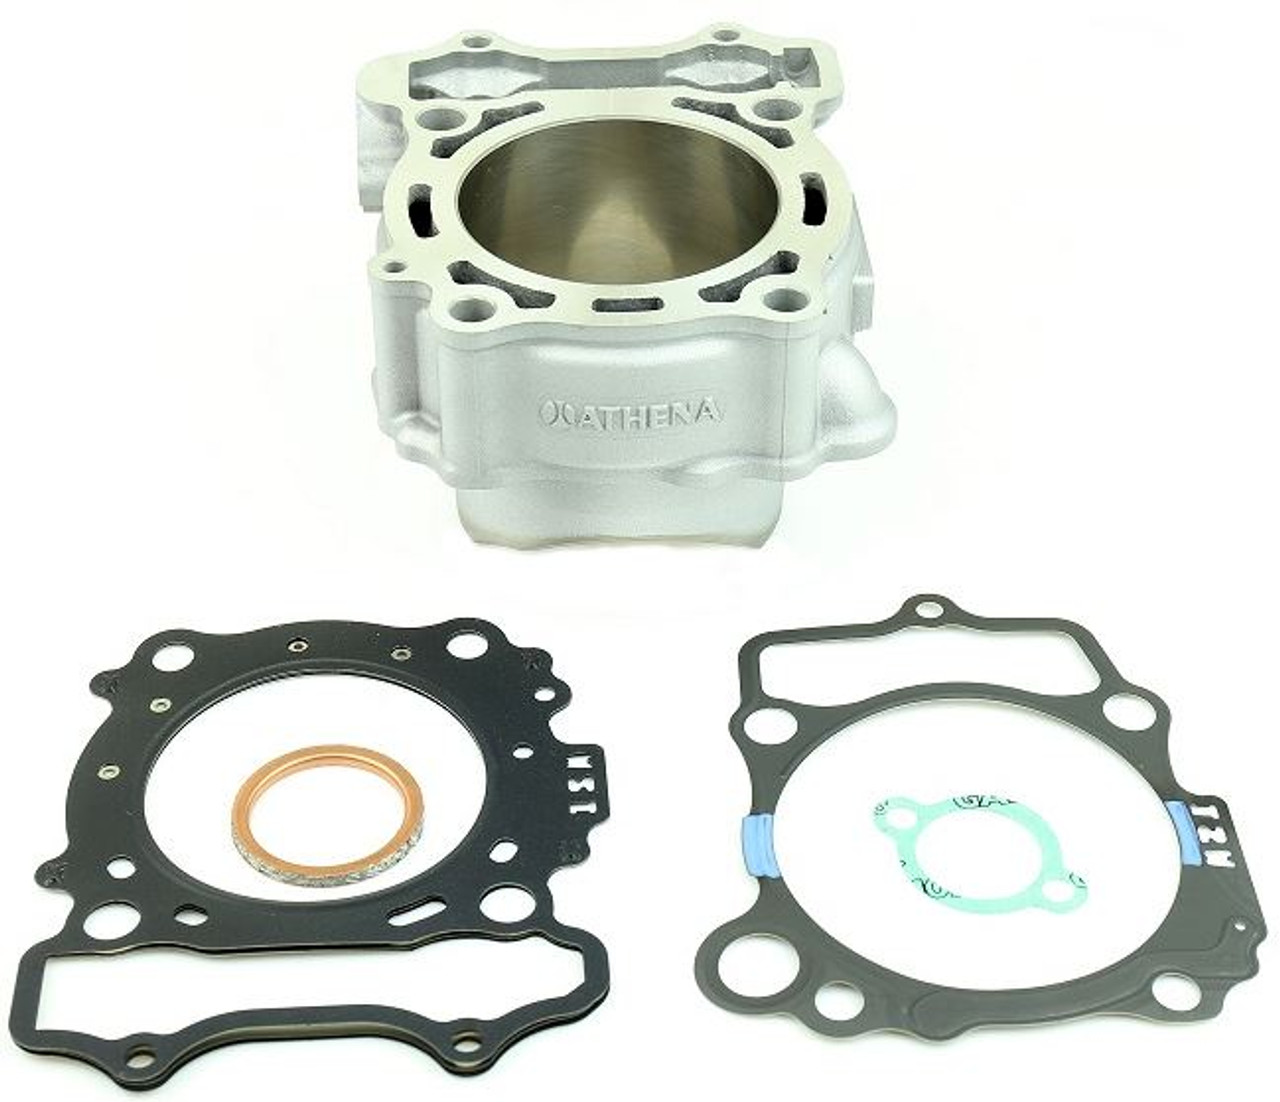 YAMAHA YZ250F 2001-2018 CYLINDER KIT BARREL & GASKETS ATHENA